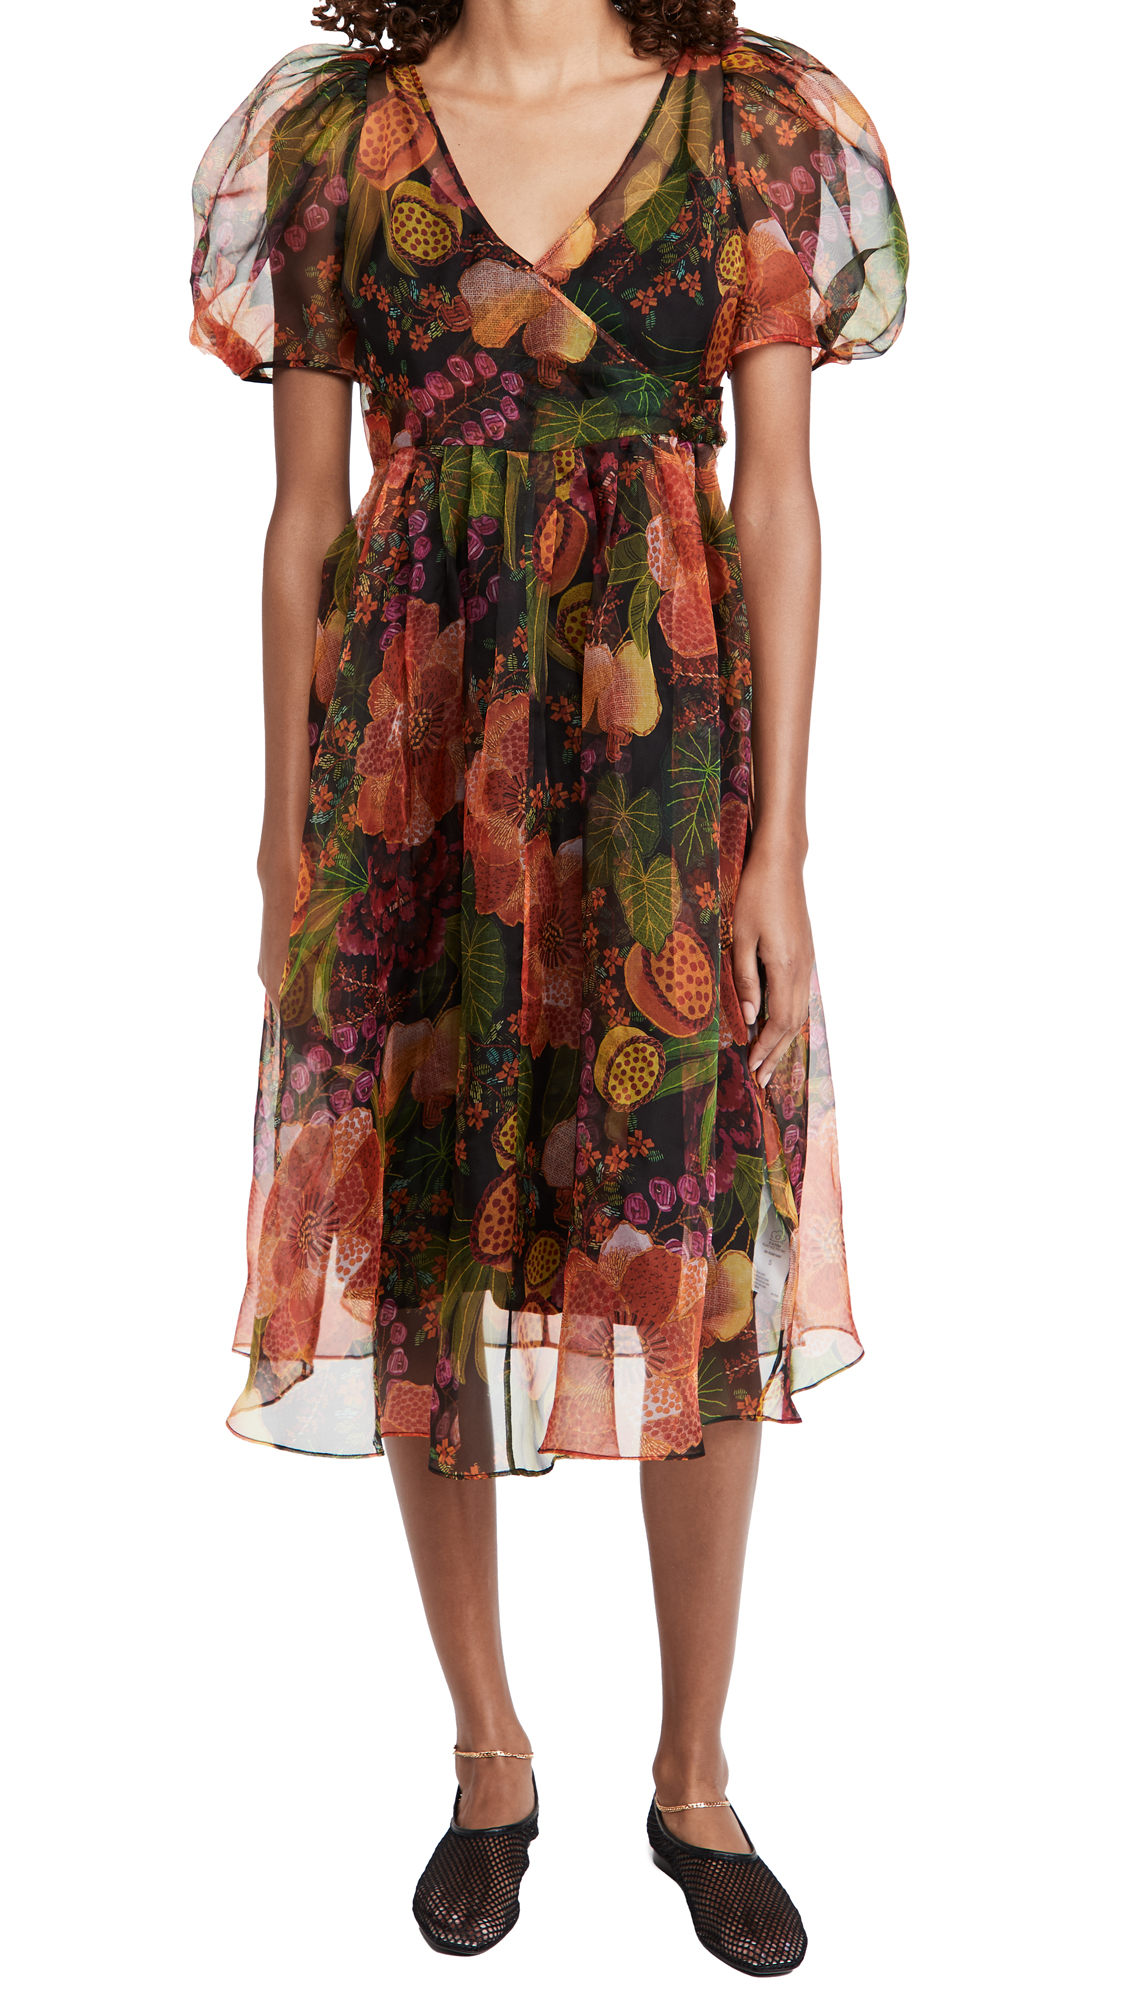 FARM Rio Black Fruit Floral Wrap Midi Dress